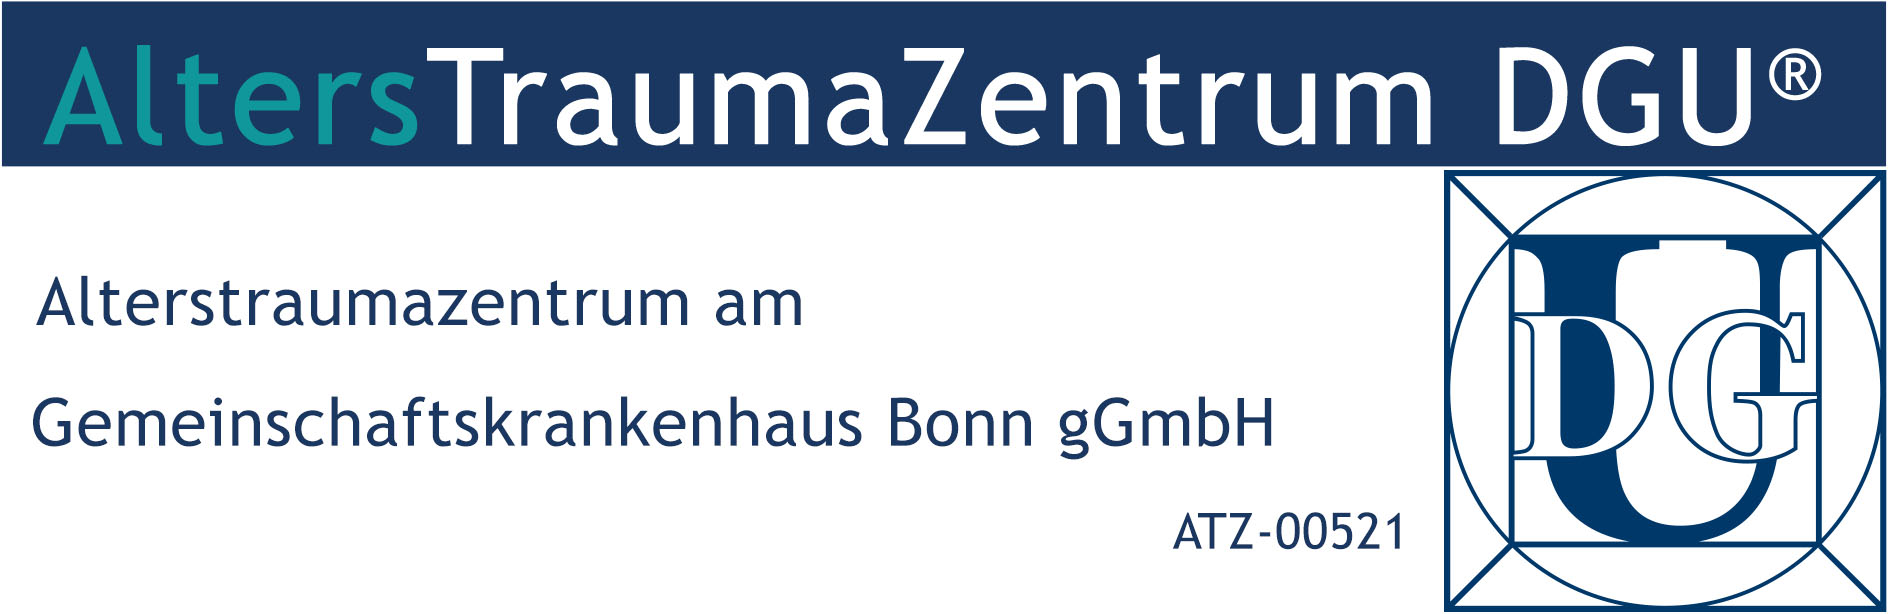 AltersTraumaZentrum